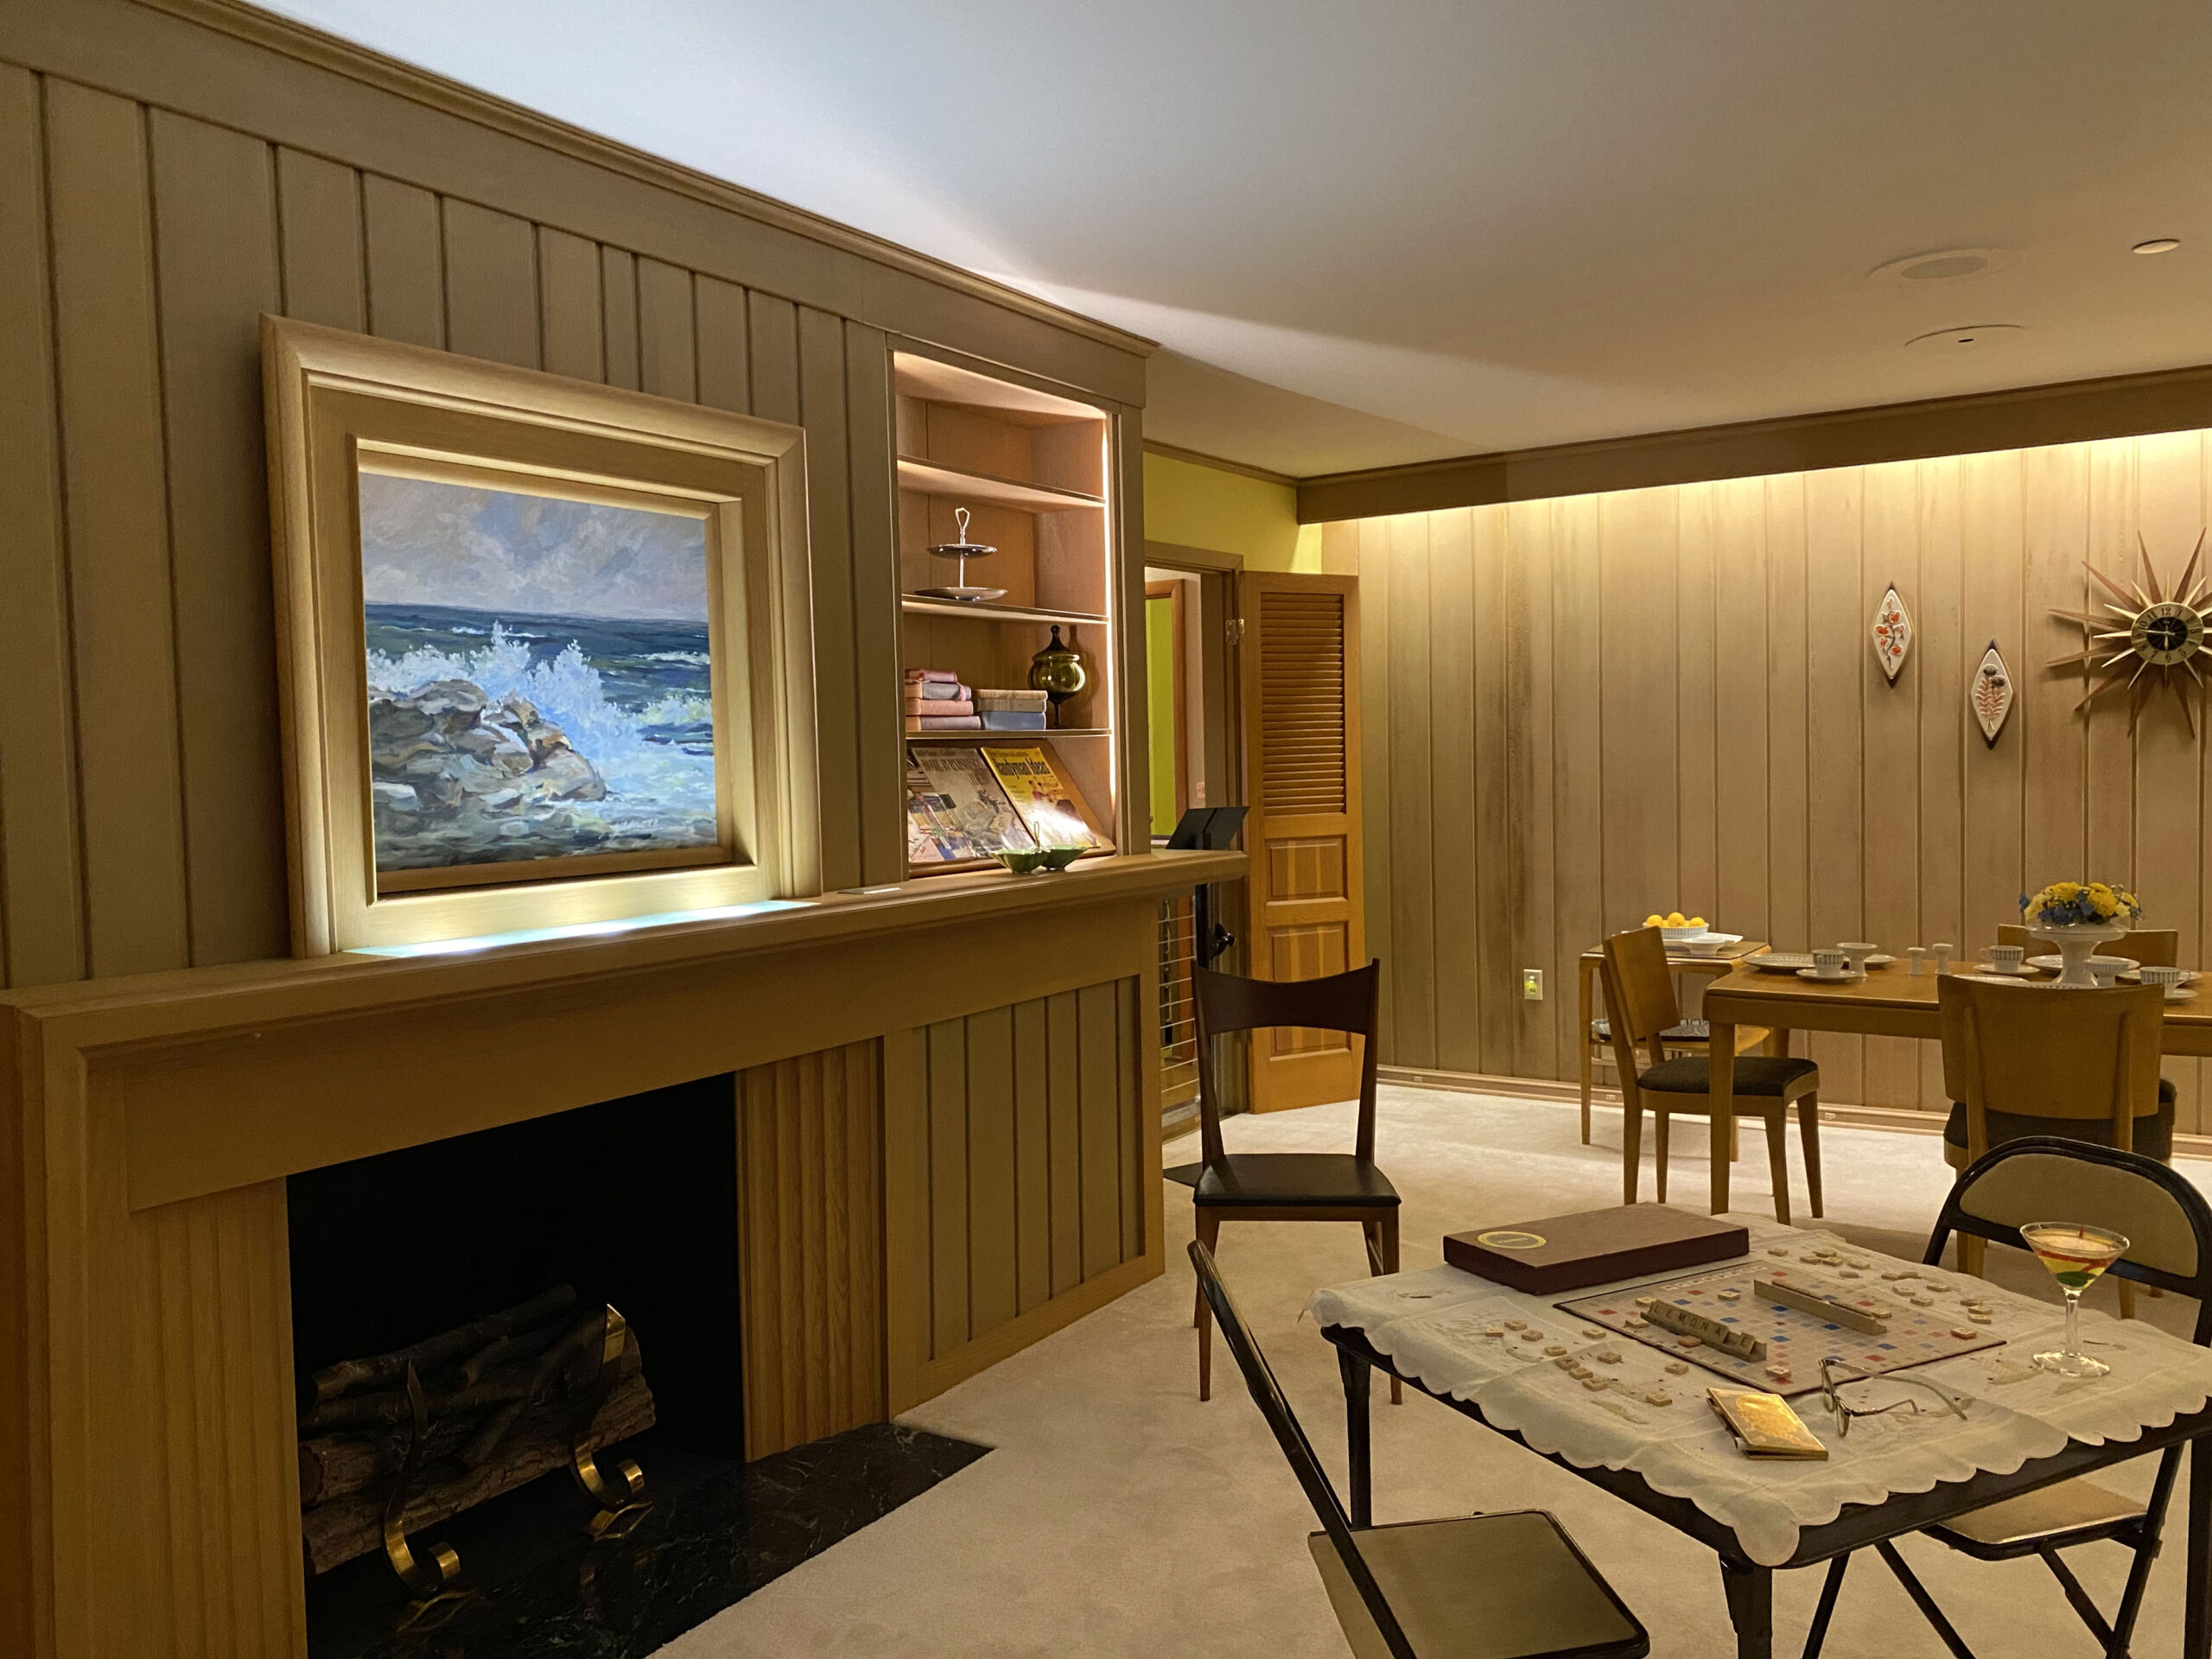 Living room including hidden TV over fire place in the 1950s All-Electric House at the Johnson County Museum in Overland Park, Kansas